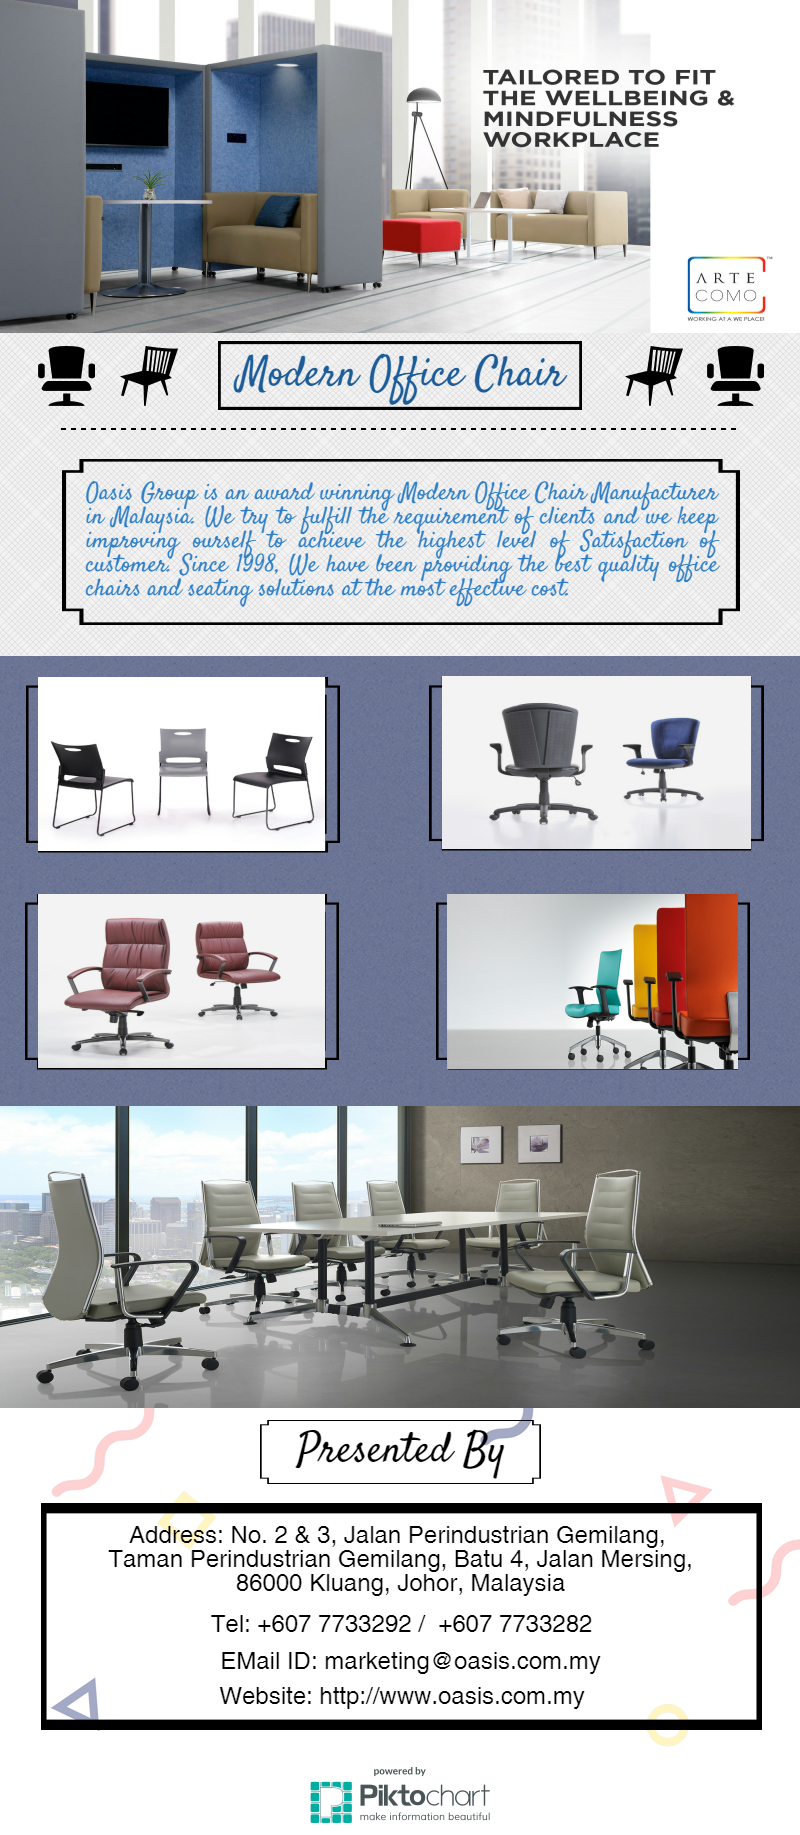 Get the best Modern Office Chair in Malaysia. Come to Us.